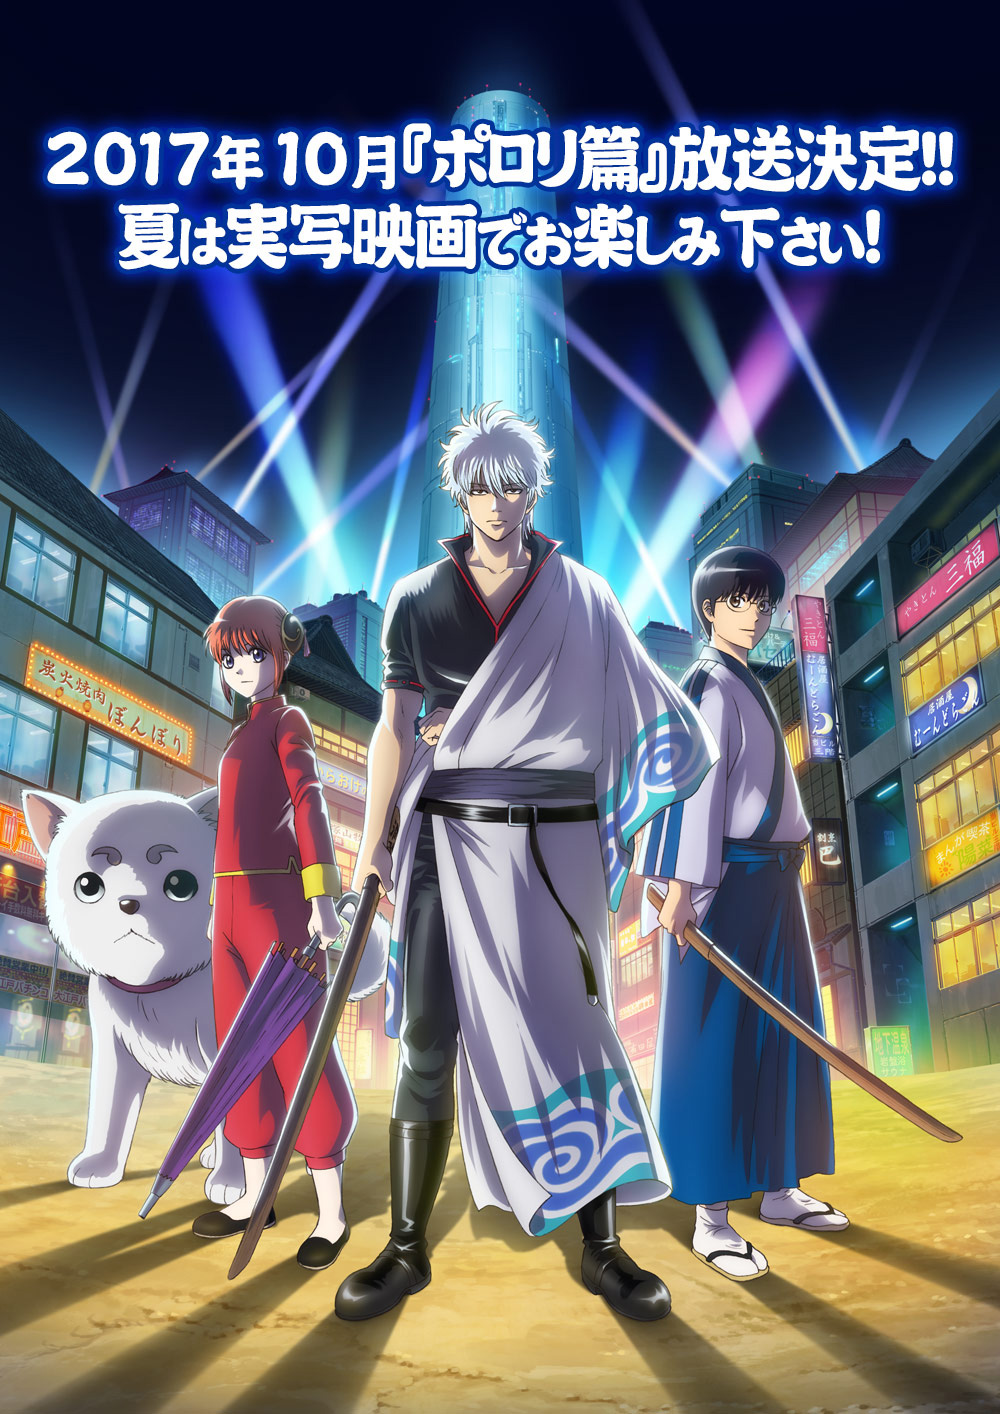 Gintama-Season-6-Announcement-Image